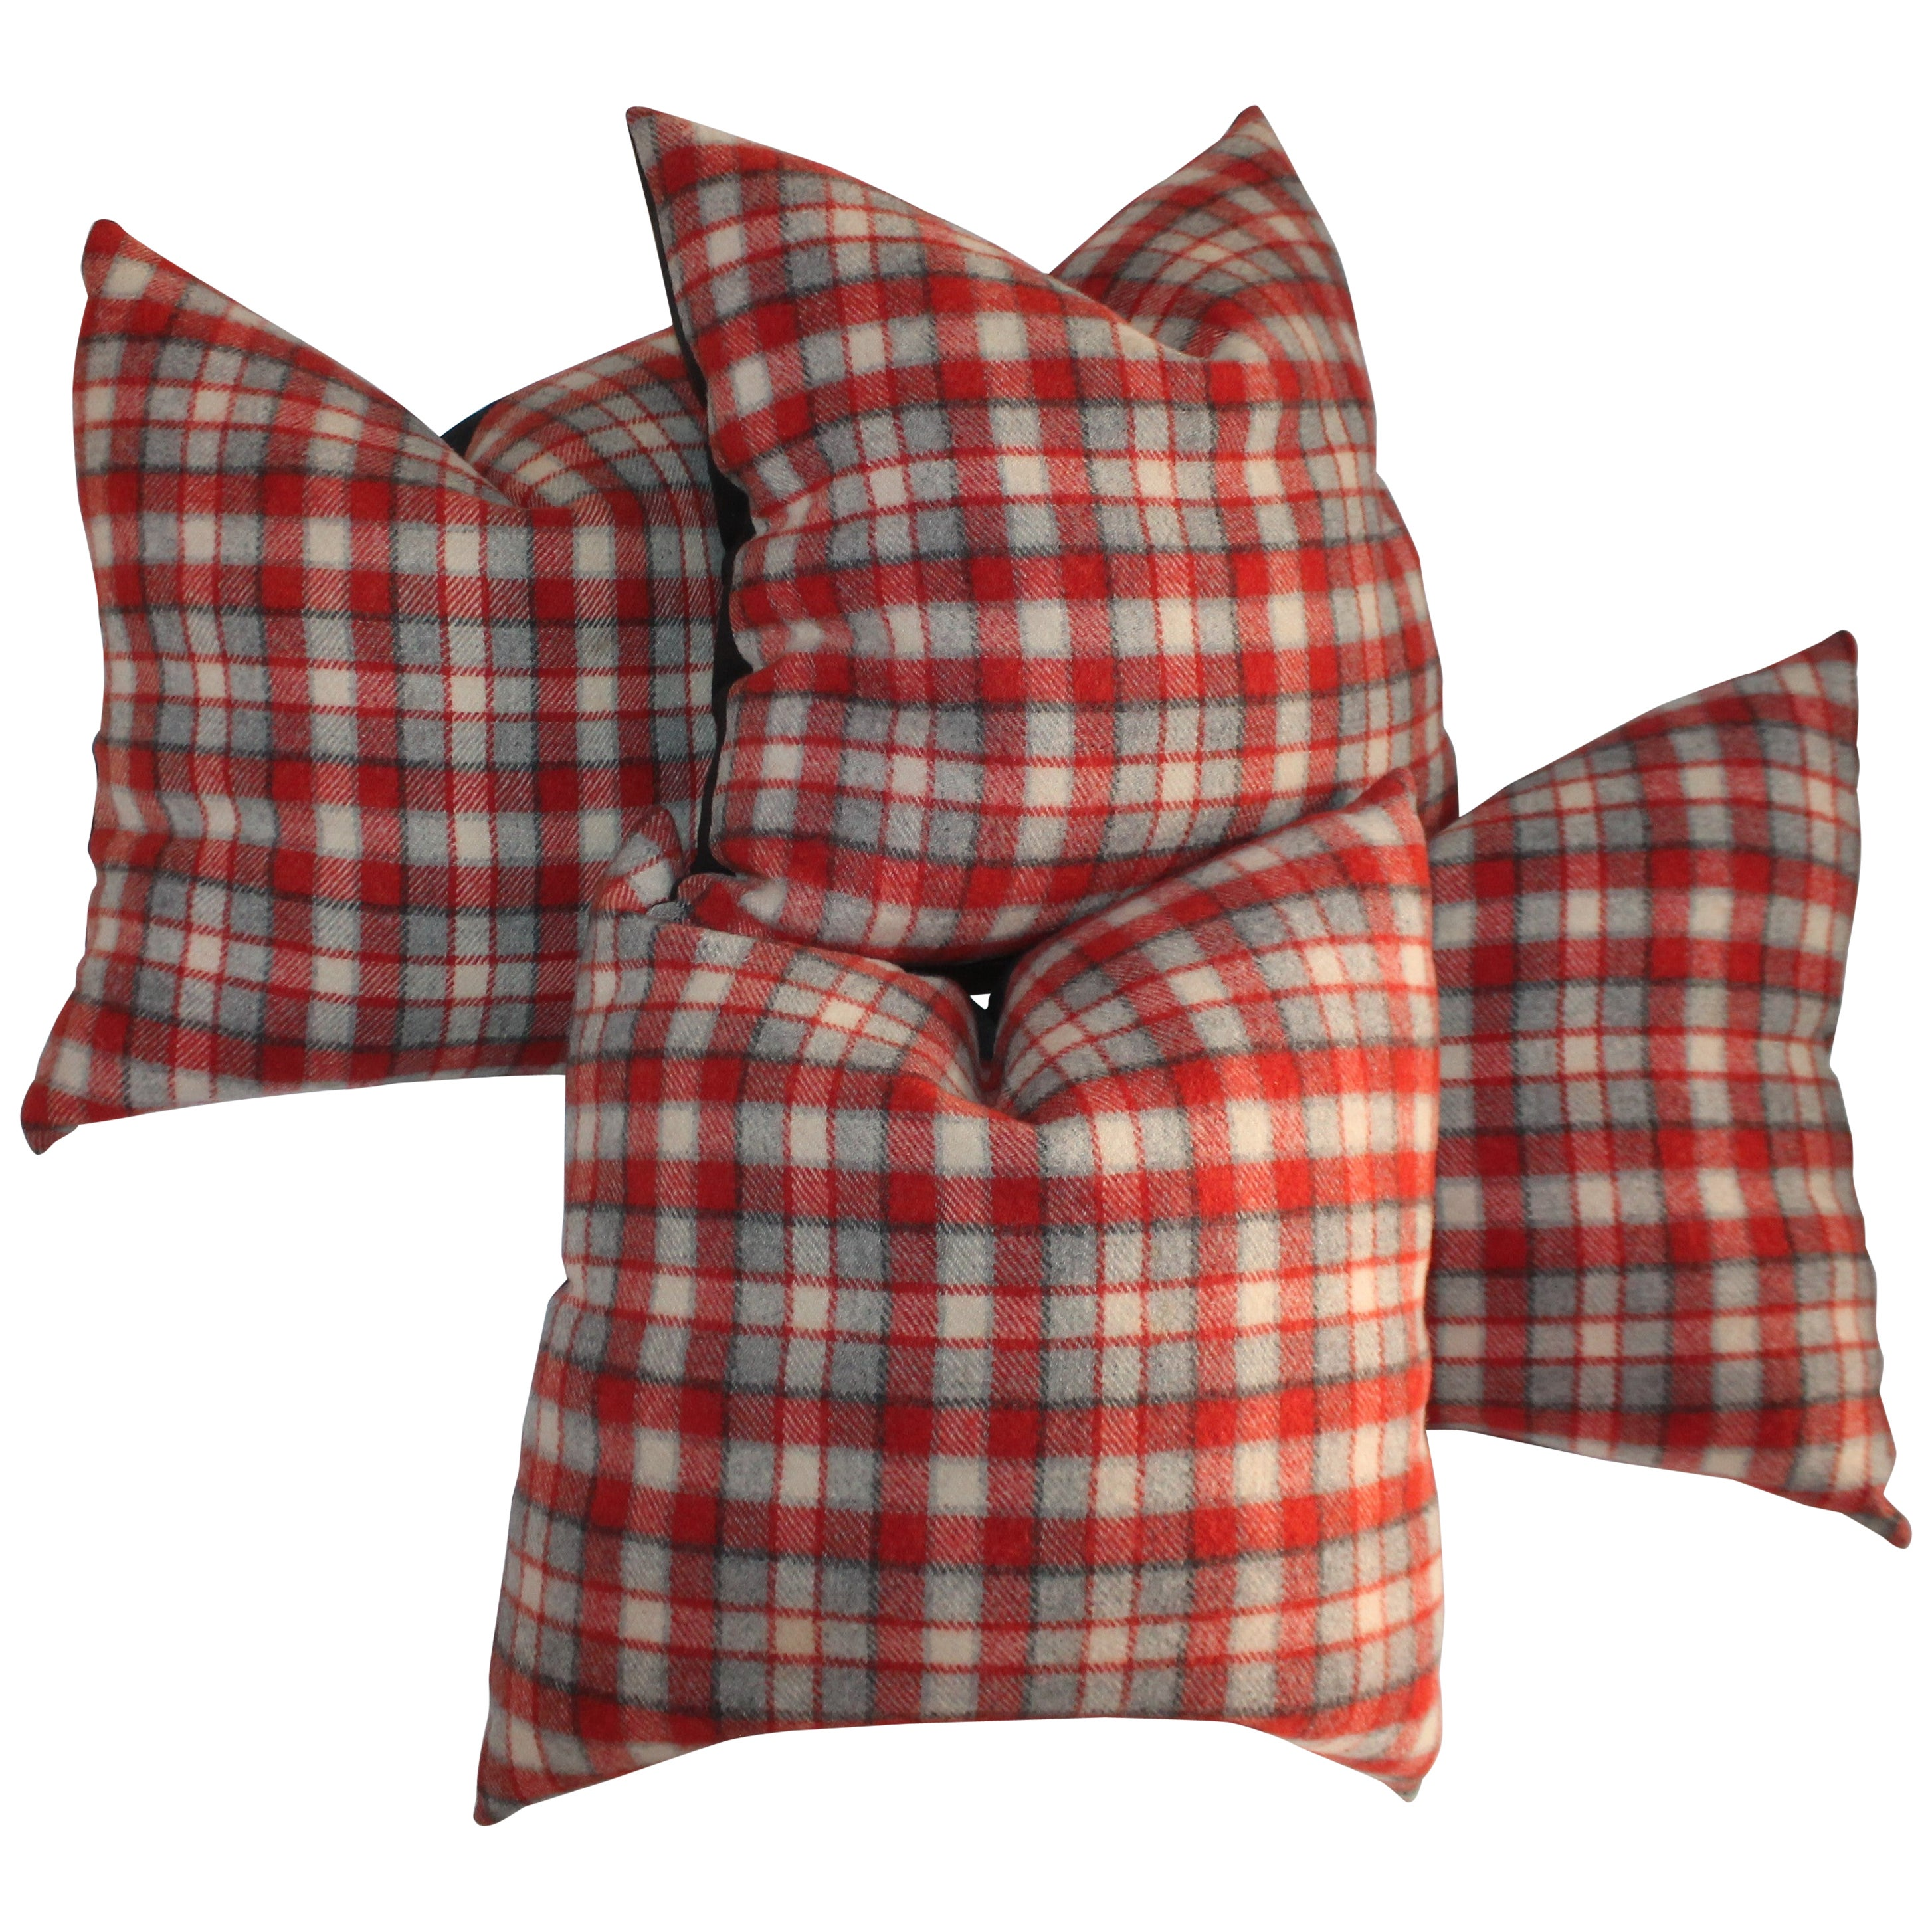 Collection of Four Plaid Camp Blanket Pillows